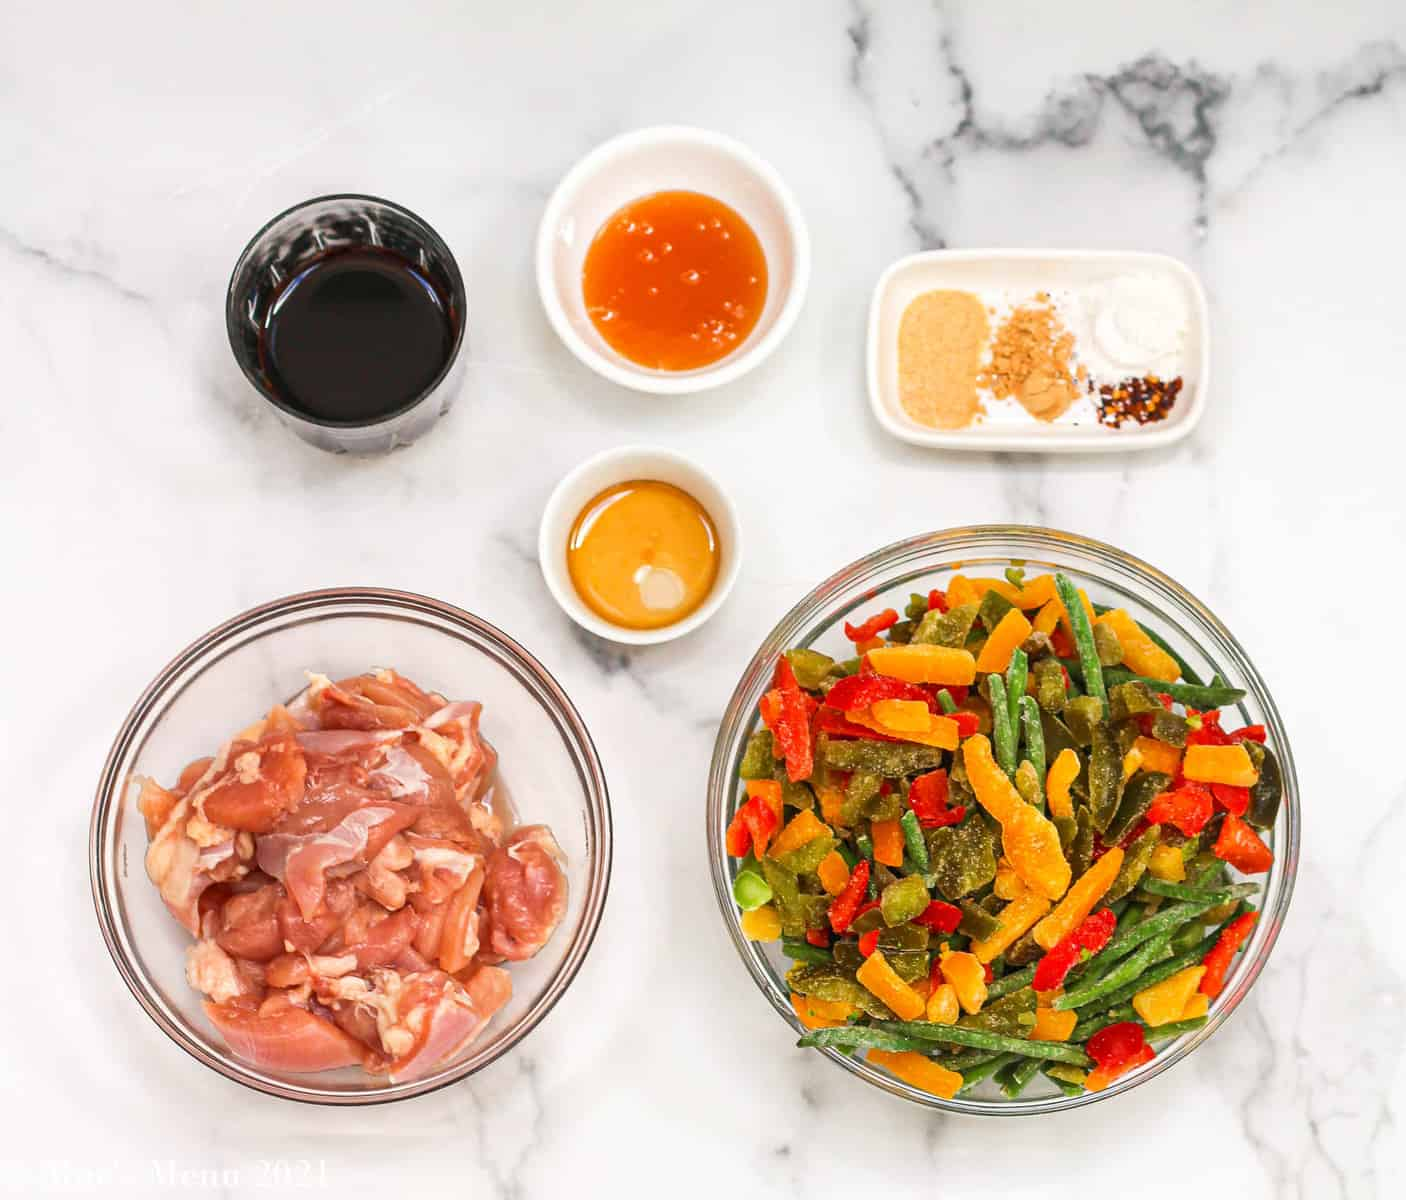 All the ingredients for the chicken with stir fried froze vegetables